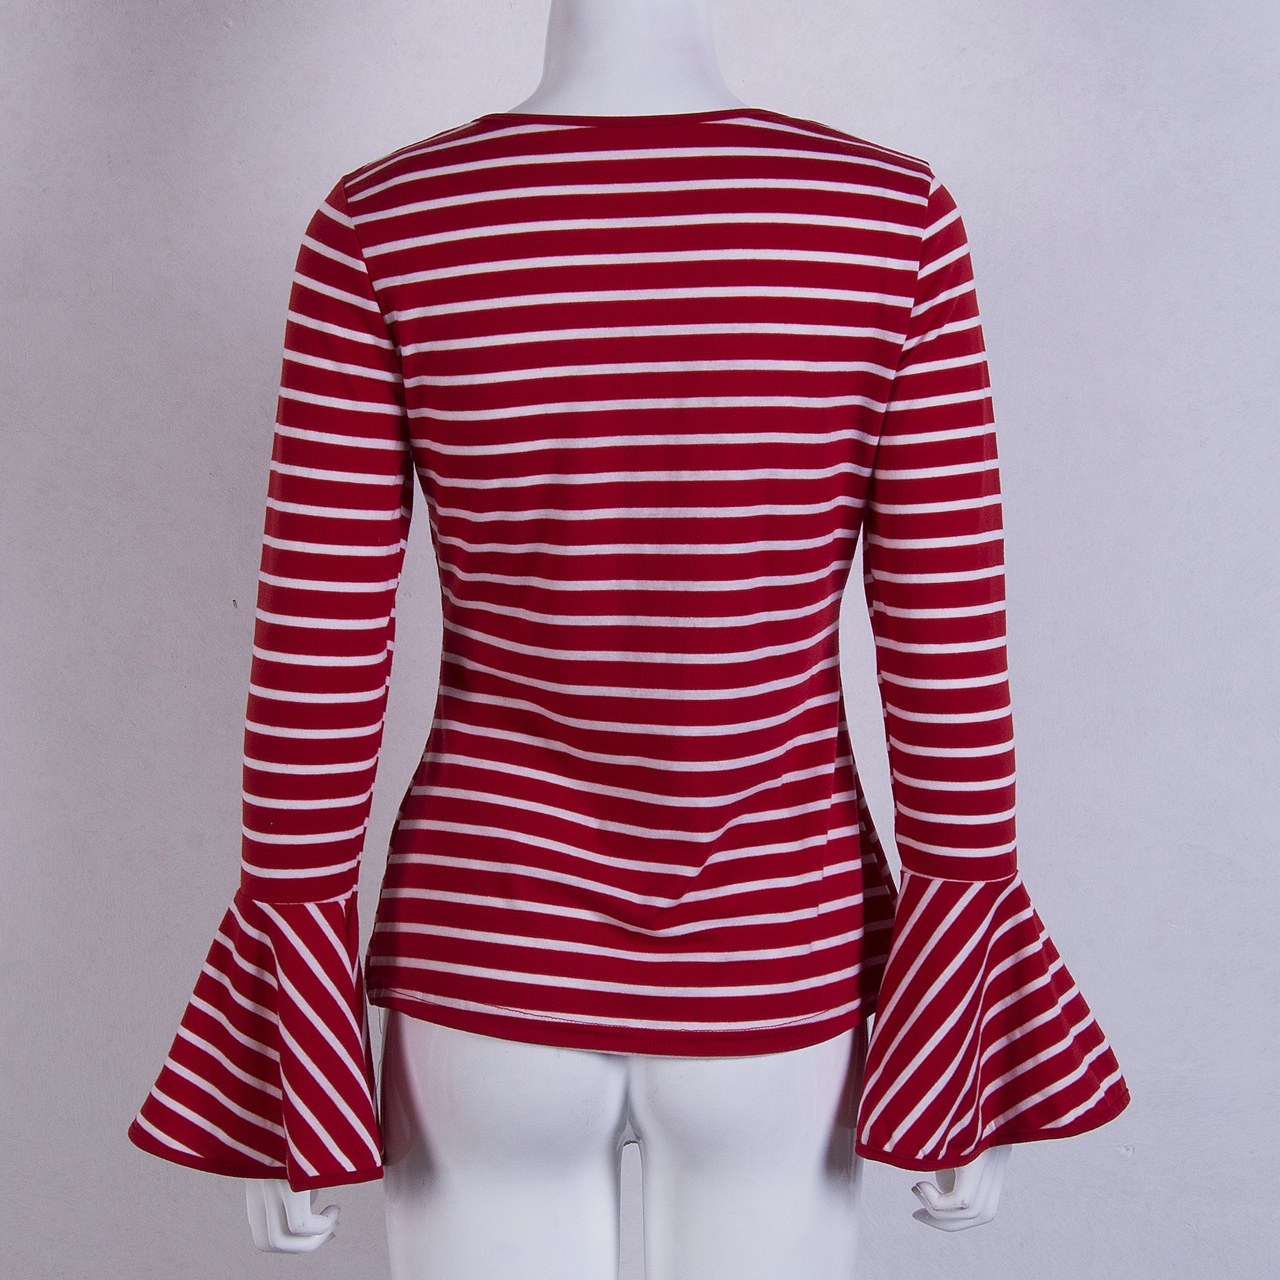 2854aec43 Red And White Striped Tee Shirt Womens – EDGE Engineering and ...